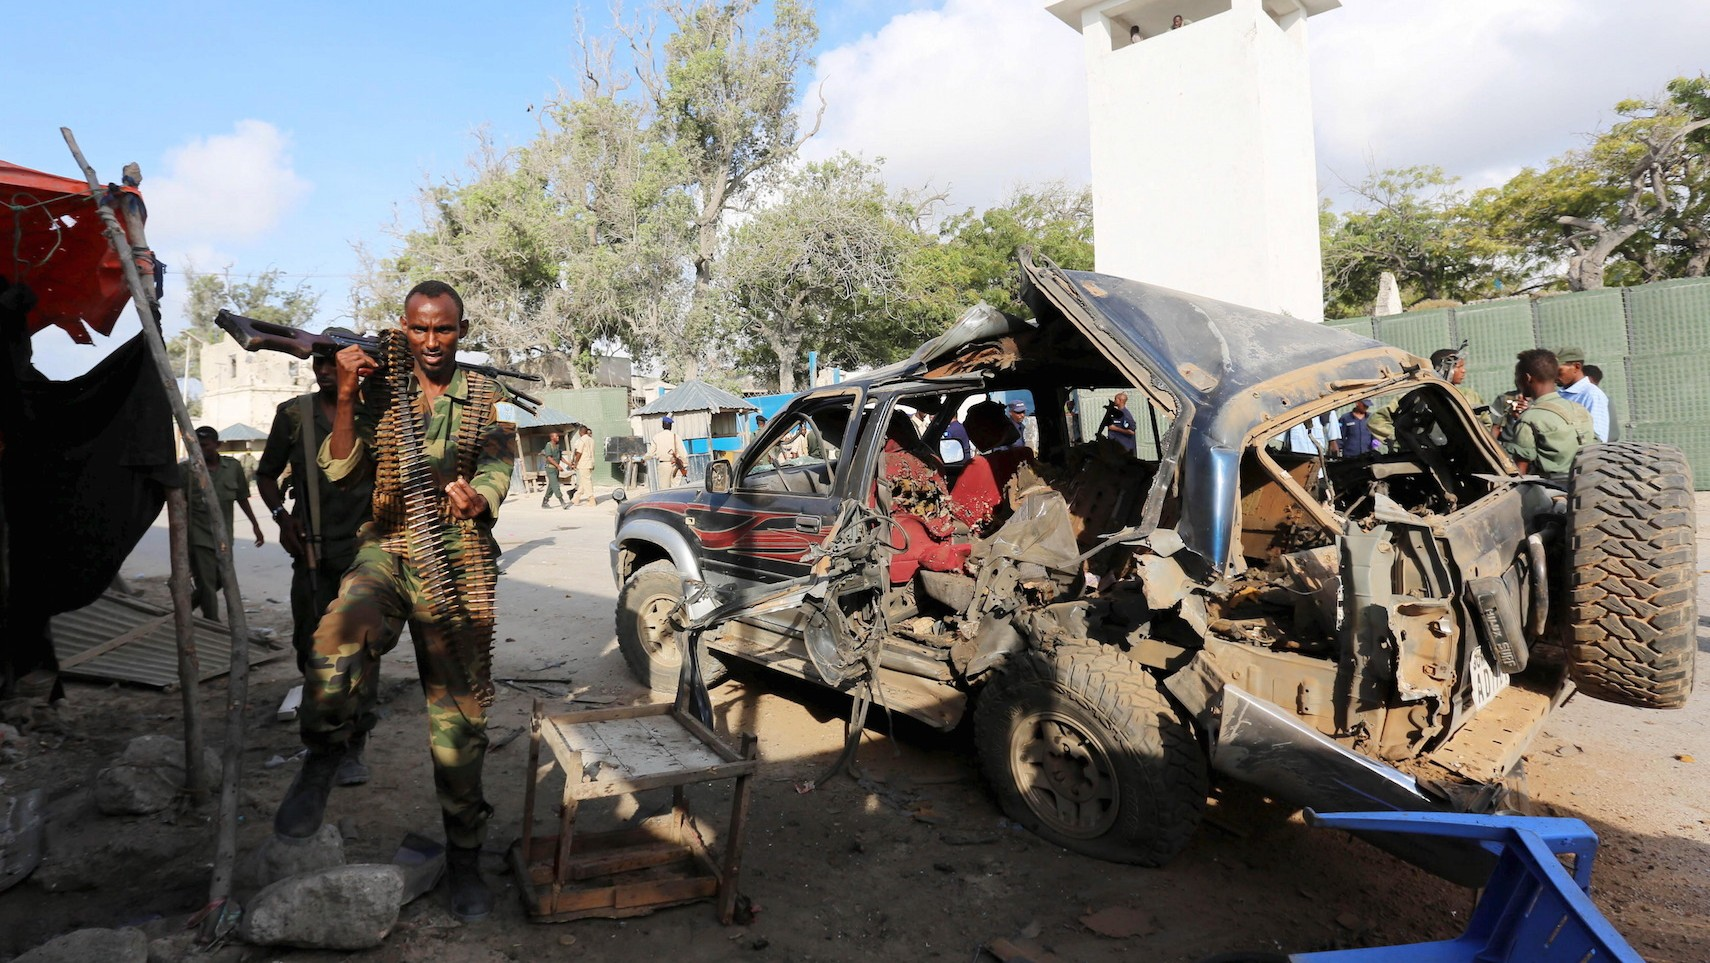 Foreign Soldiers Reportedly Attacked an al-Shabaab Base in Somalia, Days After US Airstrikes